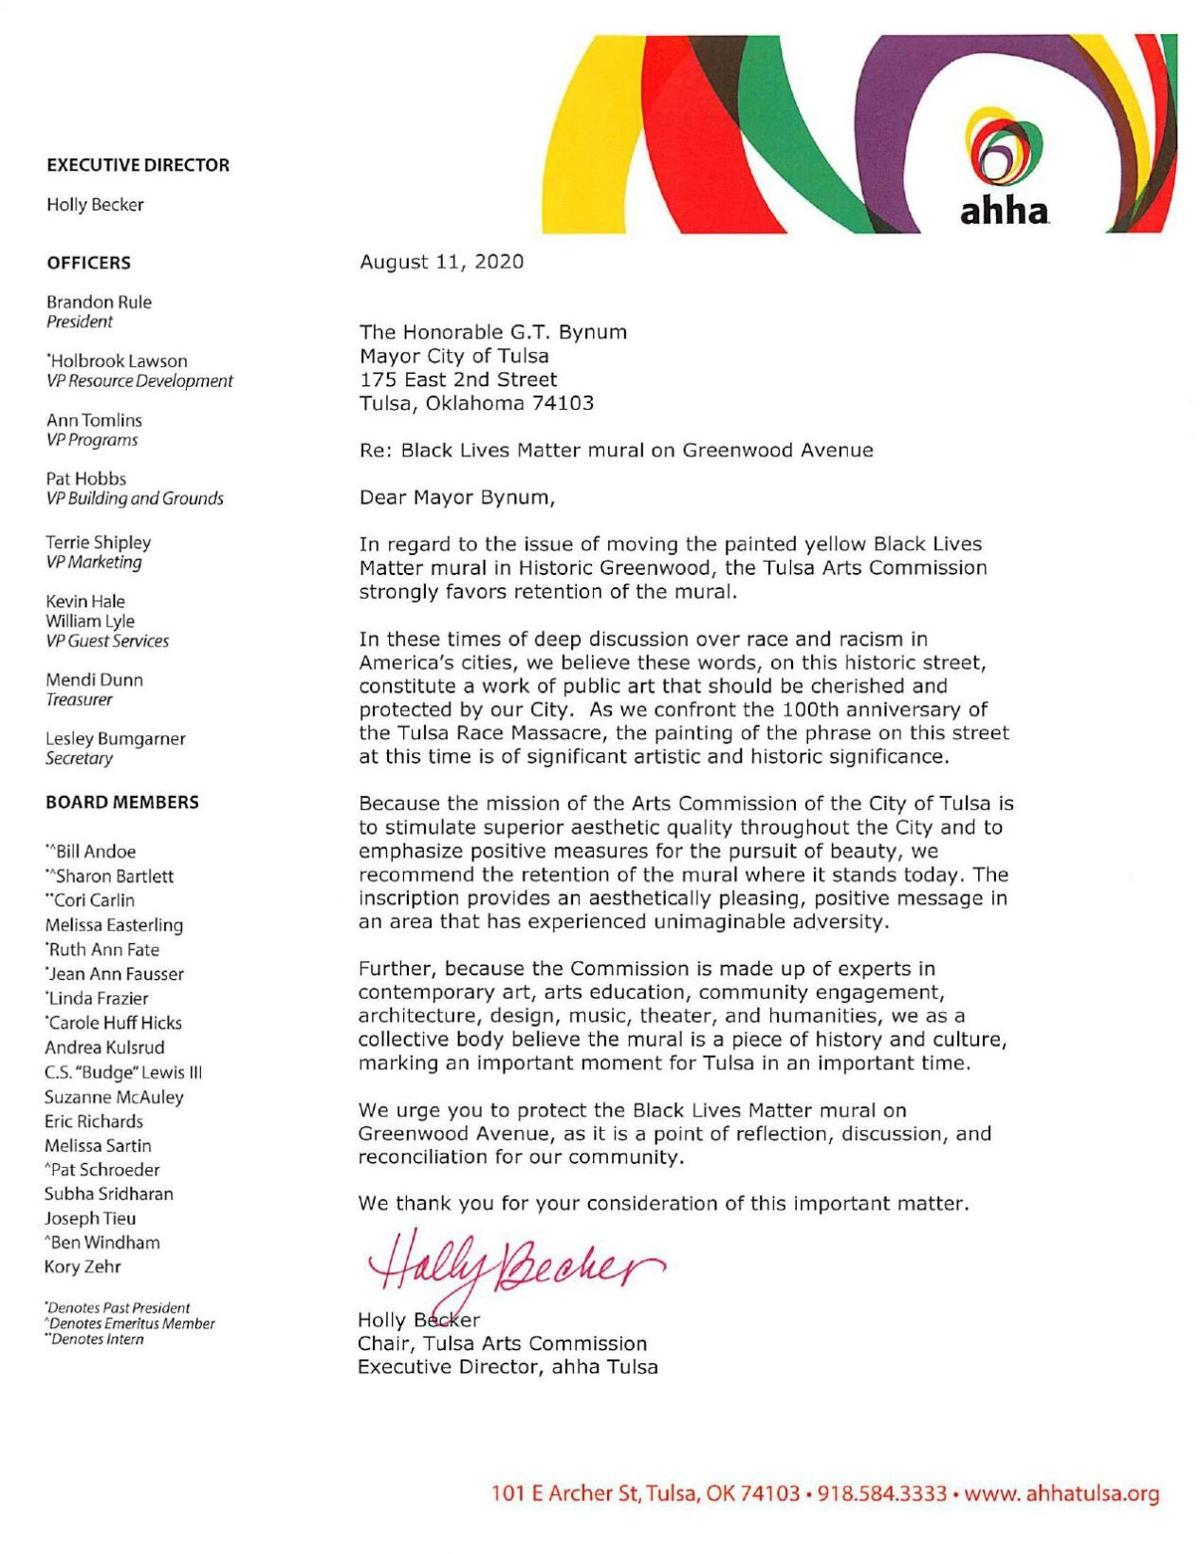 Arts Commission letter to Mayor Bynum, city council in support of the BLM mural